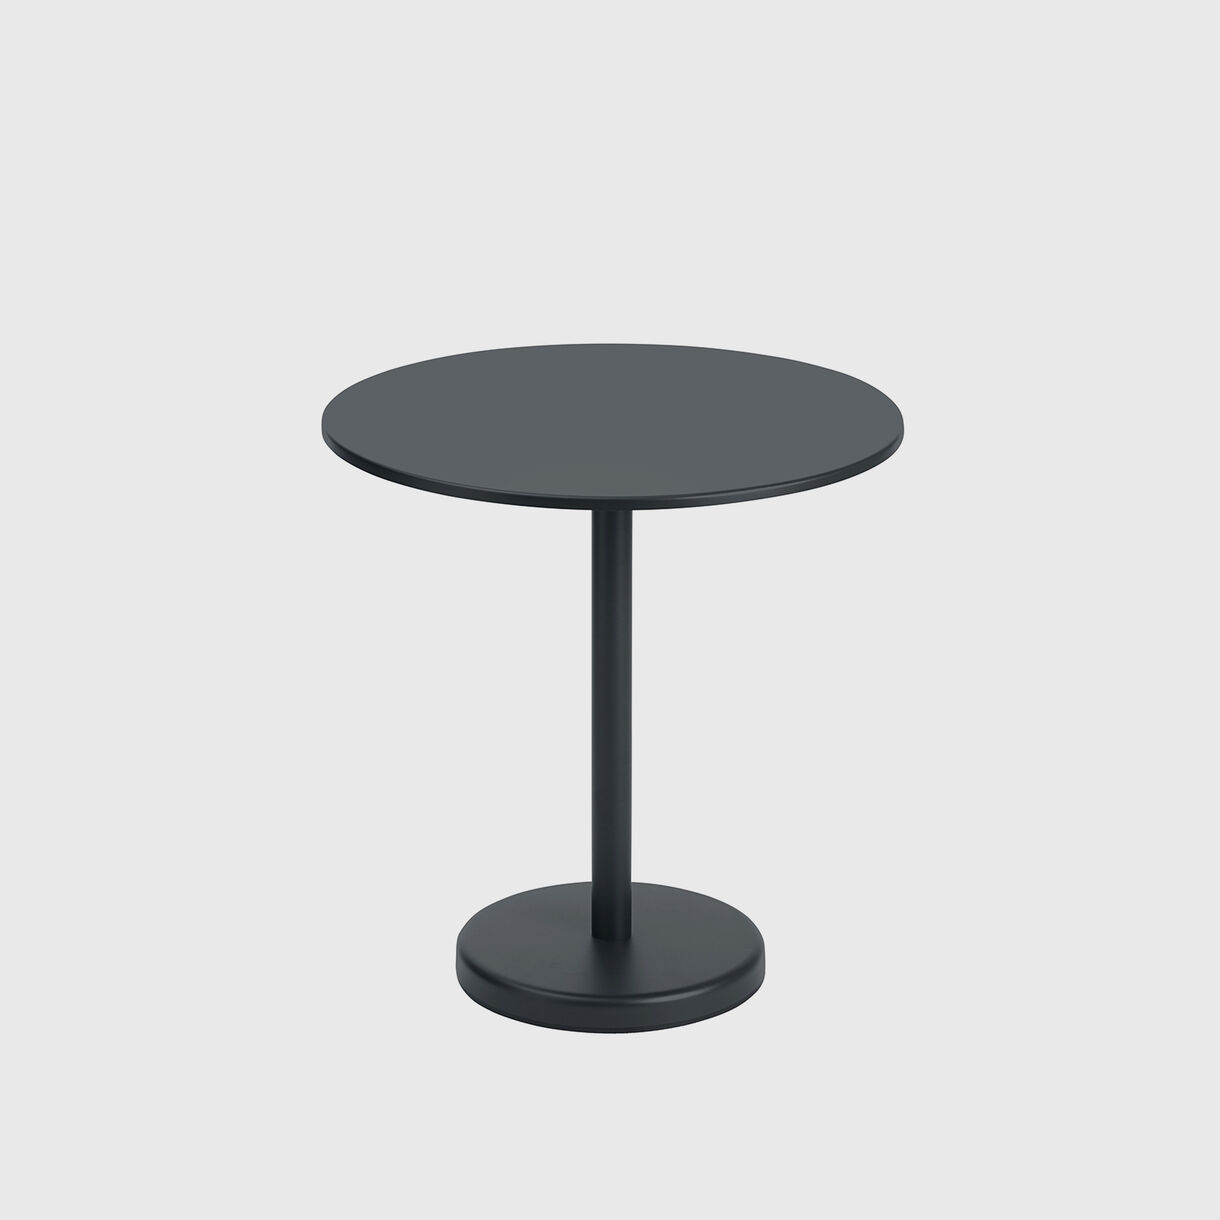 Linear Steel Round Cafe Table, Black